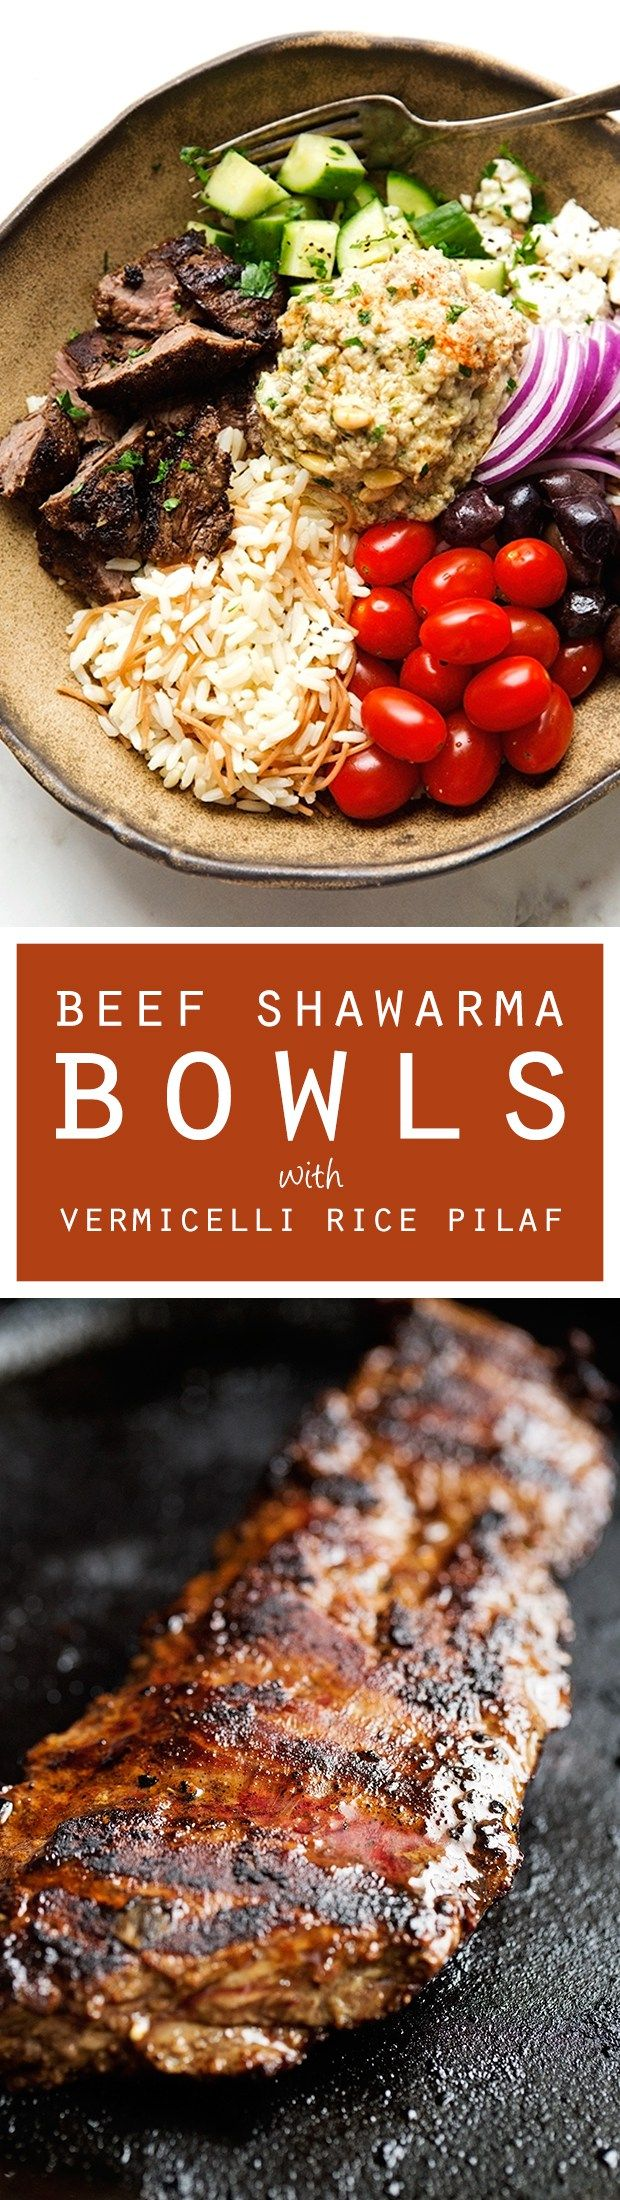 Beef Shawarma with Vermicelli Rice Pilaf - A simple shawarma plate just like your favorite restaurants, topped with tons of veggies! Perfect for lunches too! #shawarma #shawarmabowl #vermicellirice   Littlespicejar.com